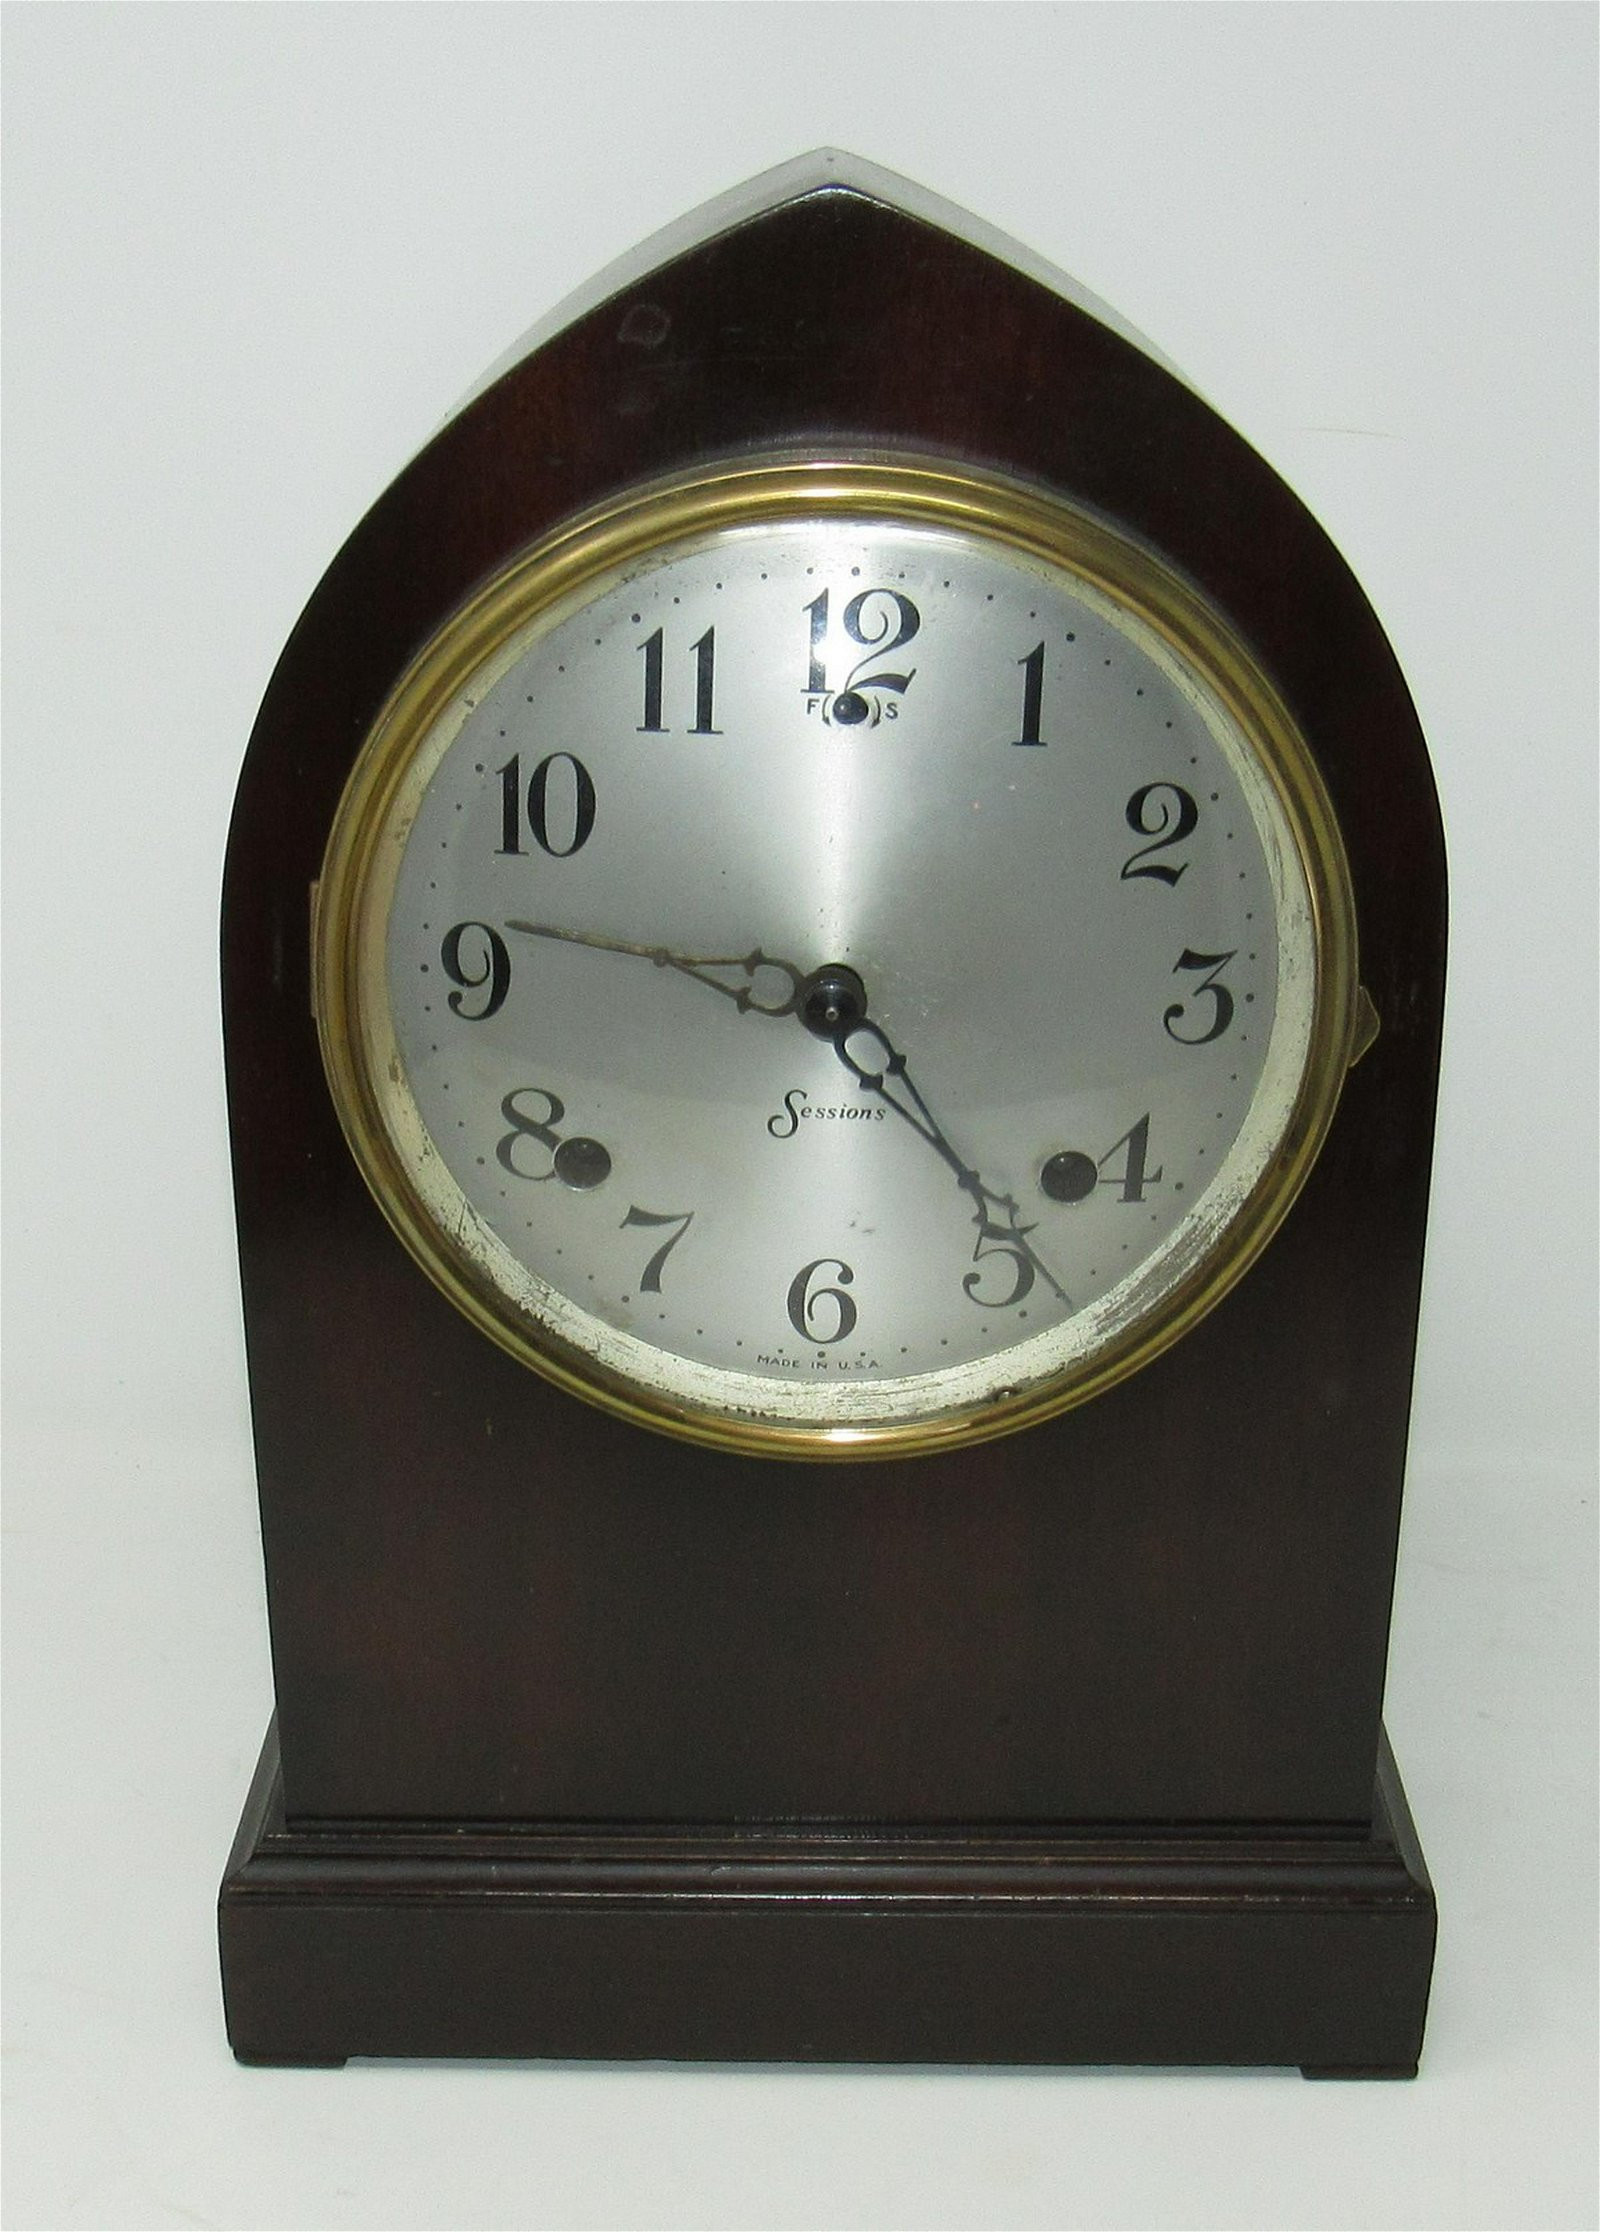 Standish Sessions Mantle Clock